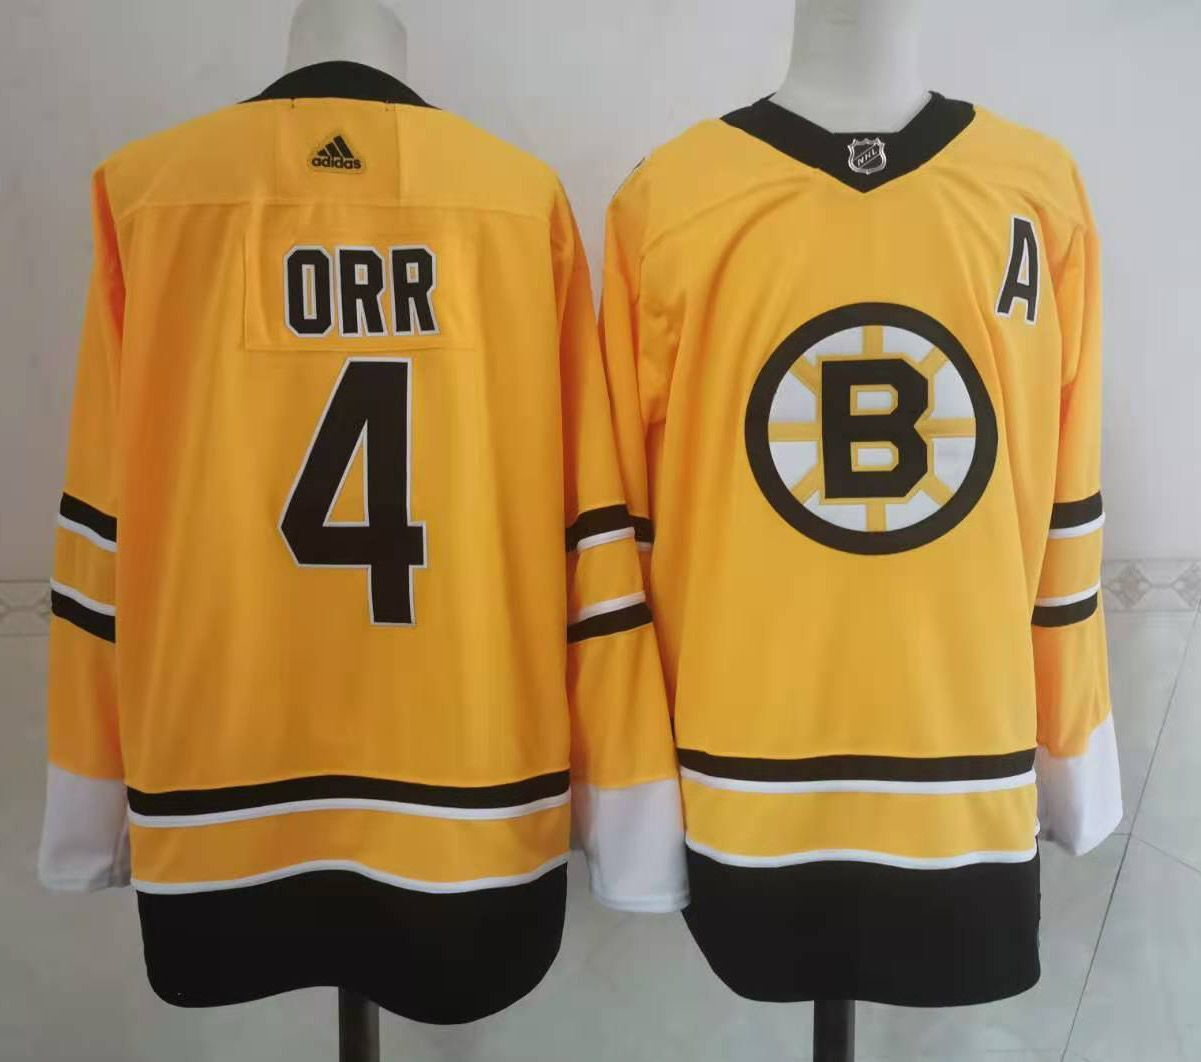 Wholesale Adidas Men Boston Bruins 4 Orr Authentic Stitched yellow NHL Jersey